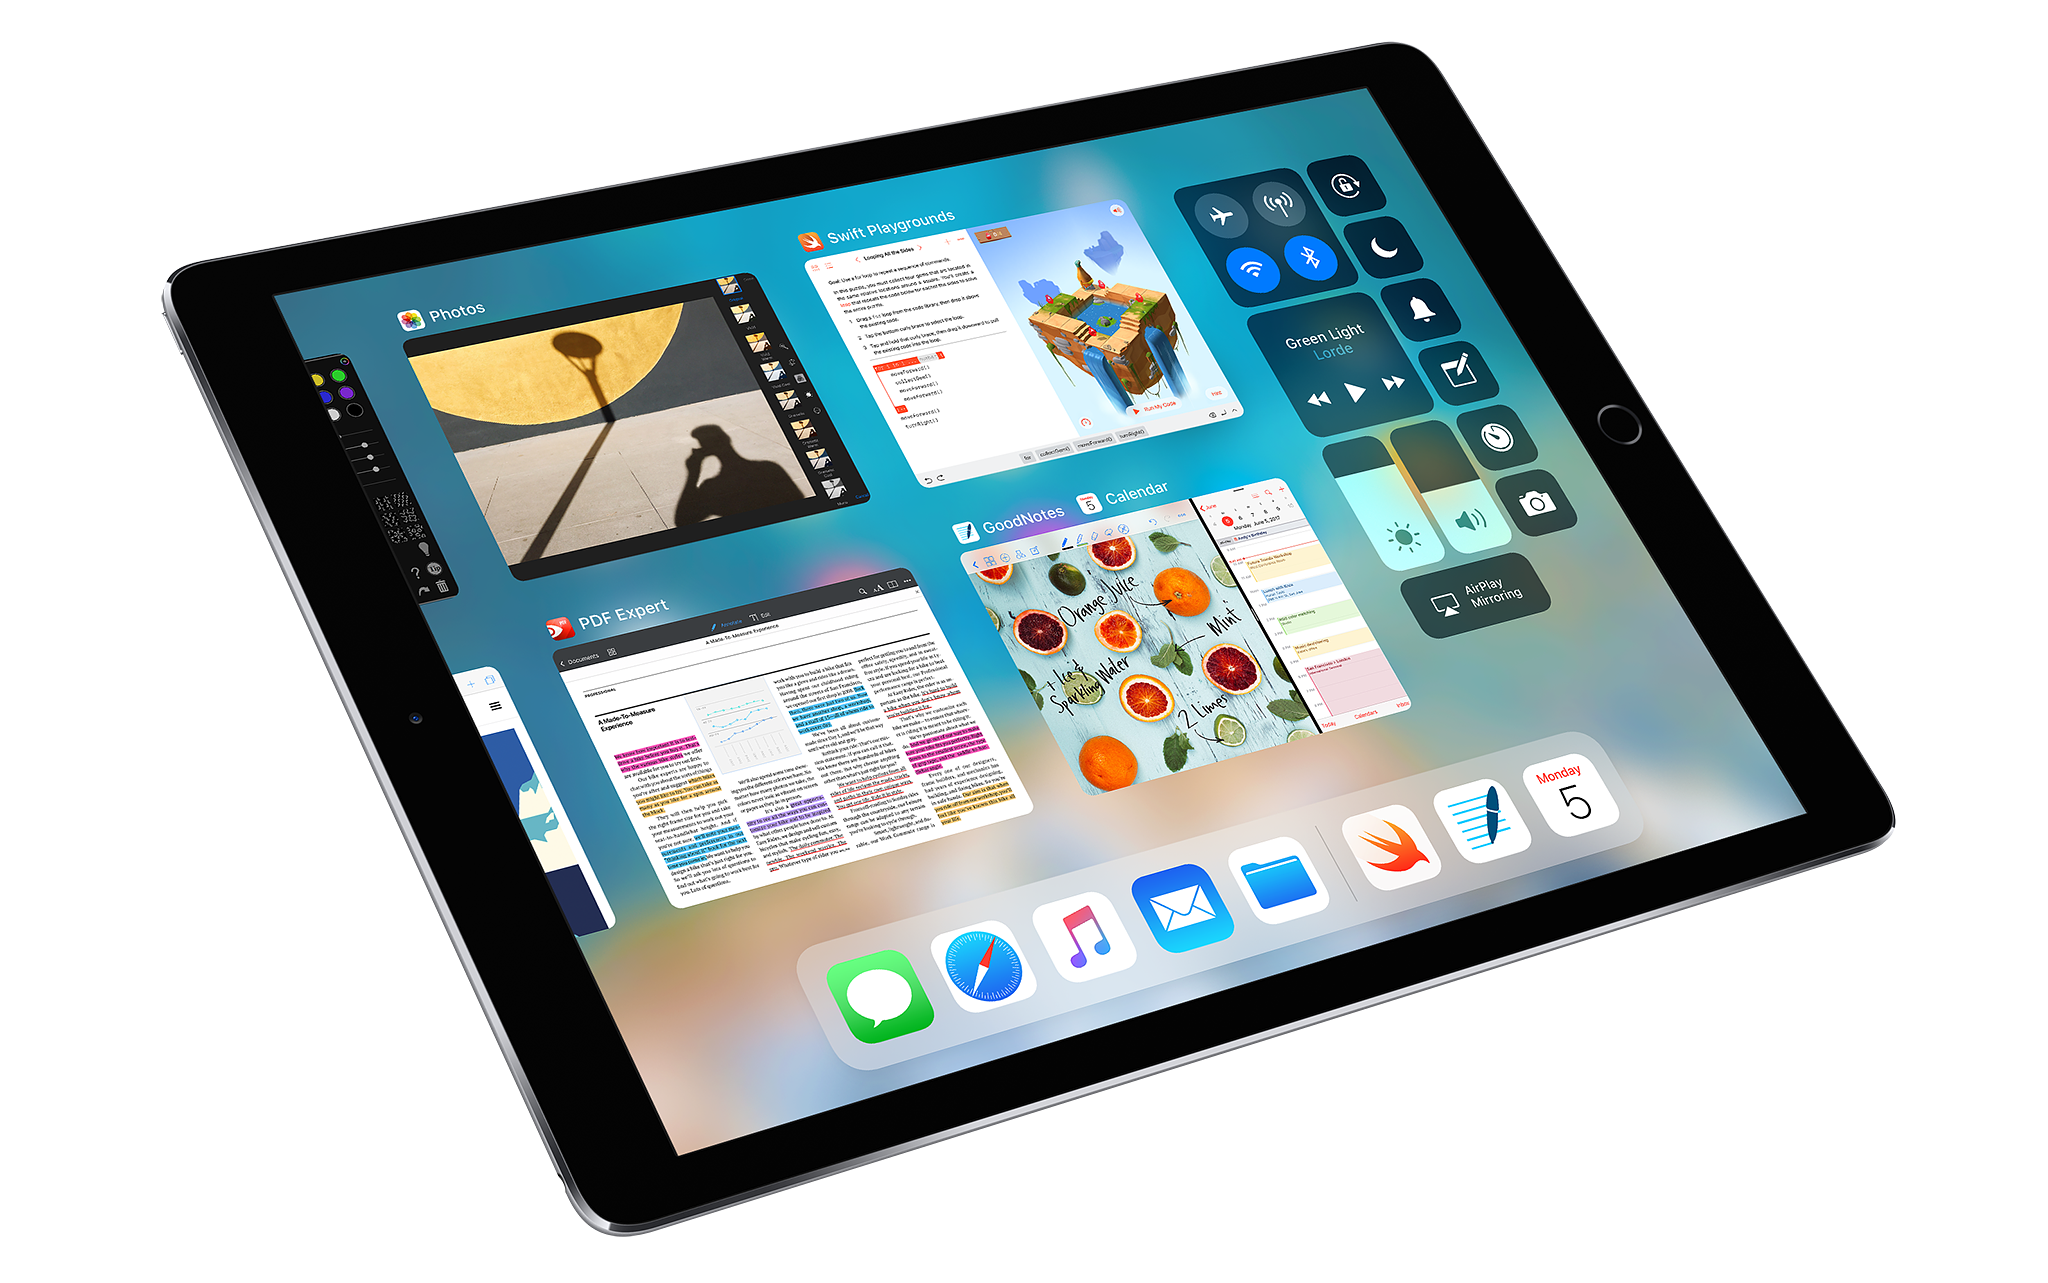 Pro new features and. Drawing ipad 9.7 picture stock